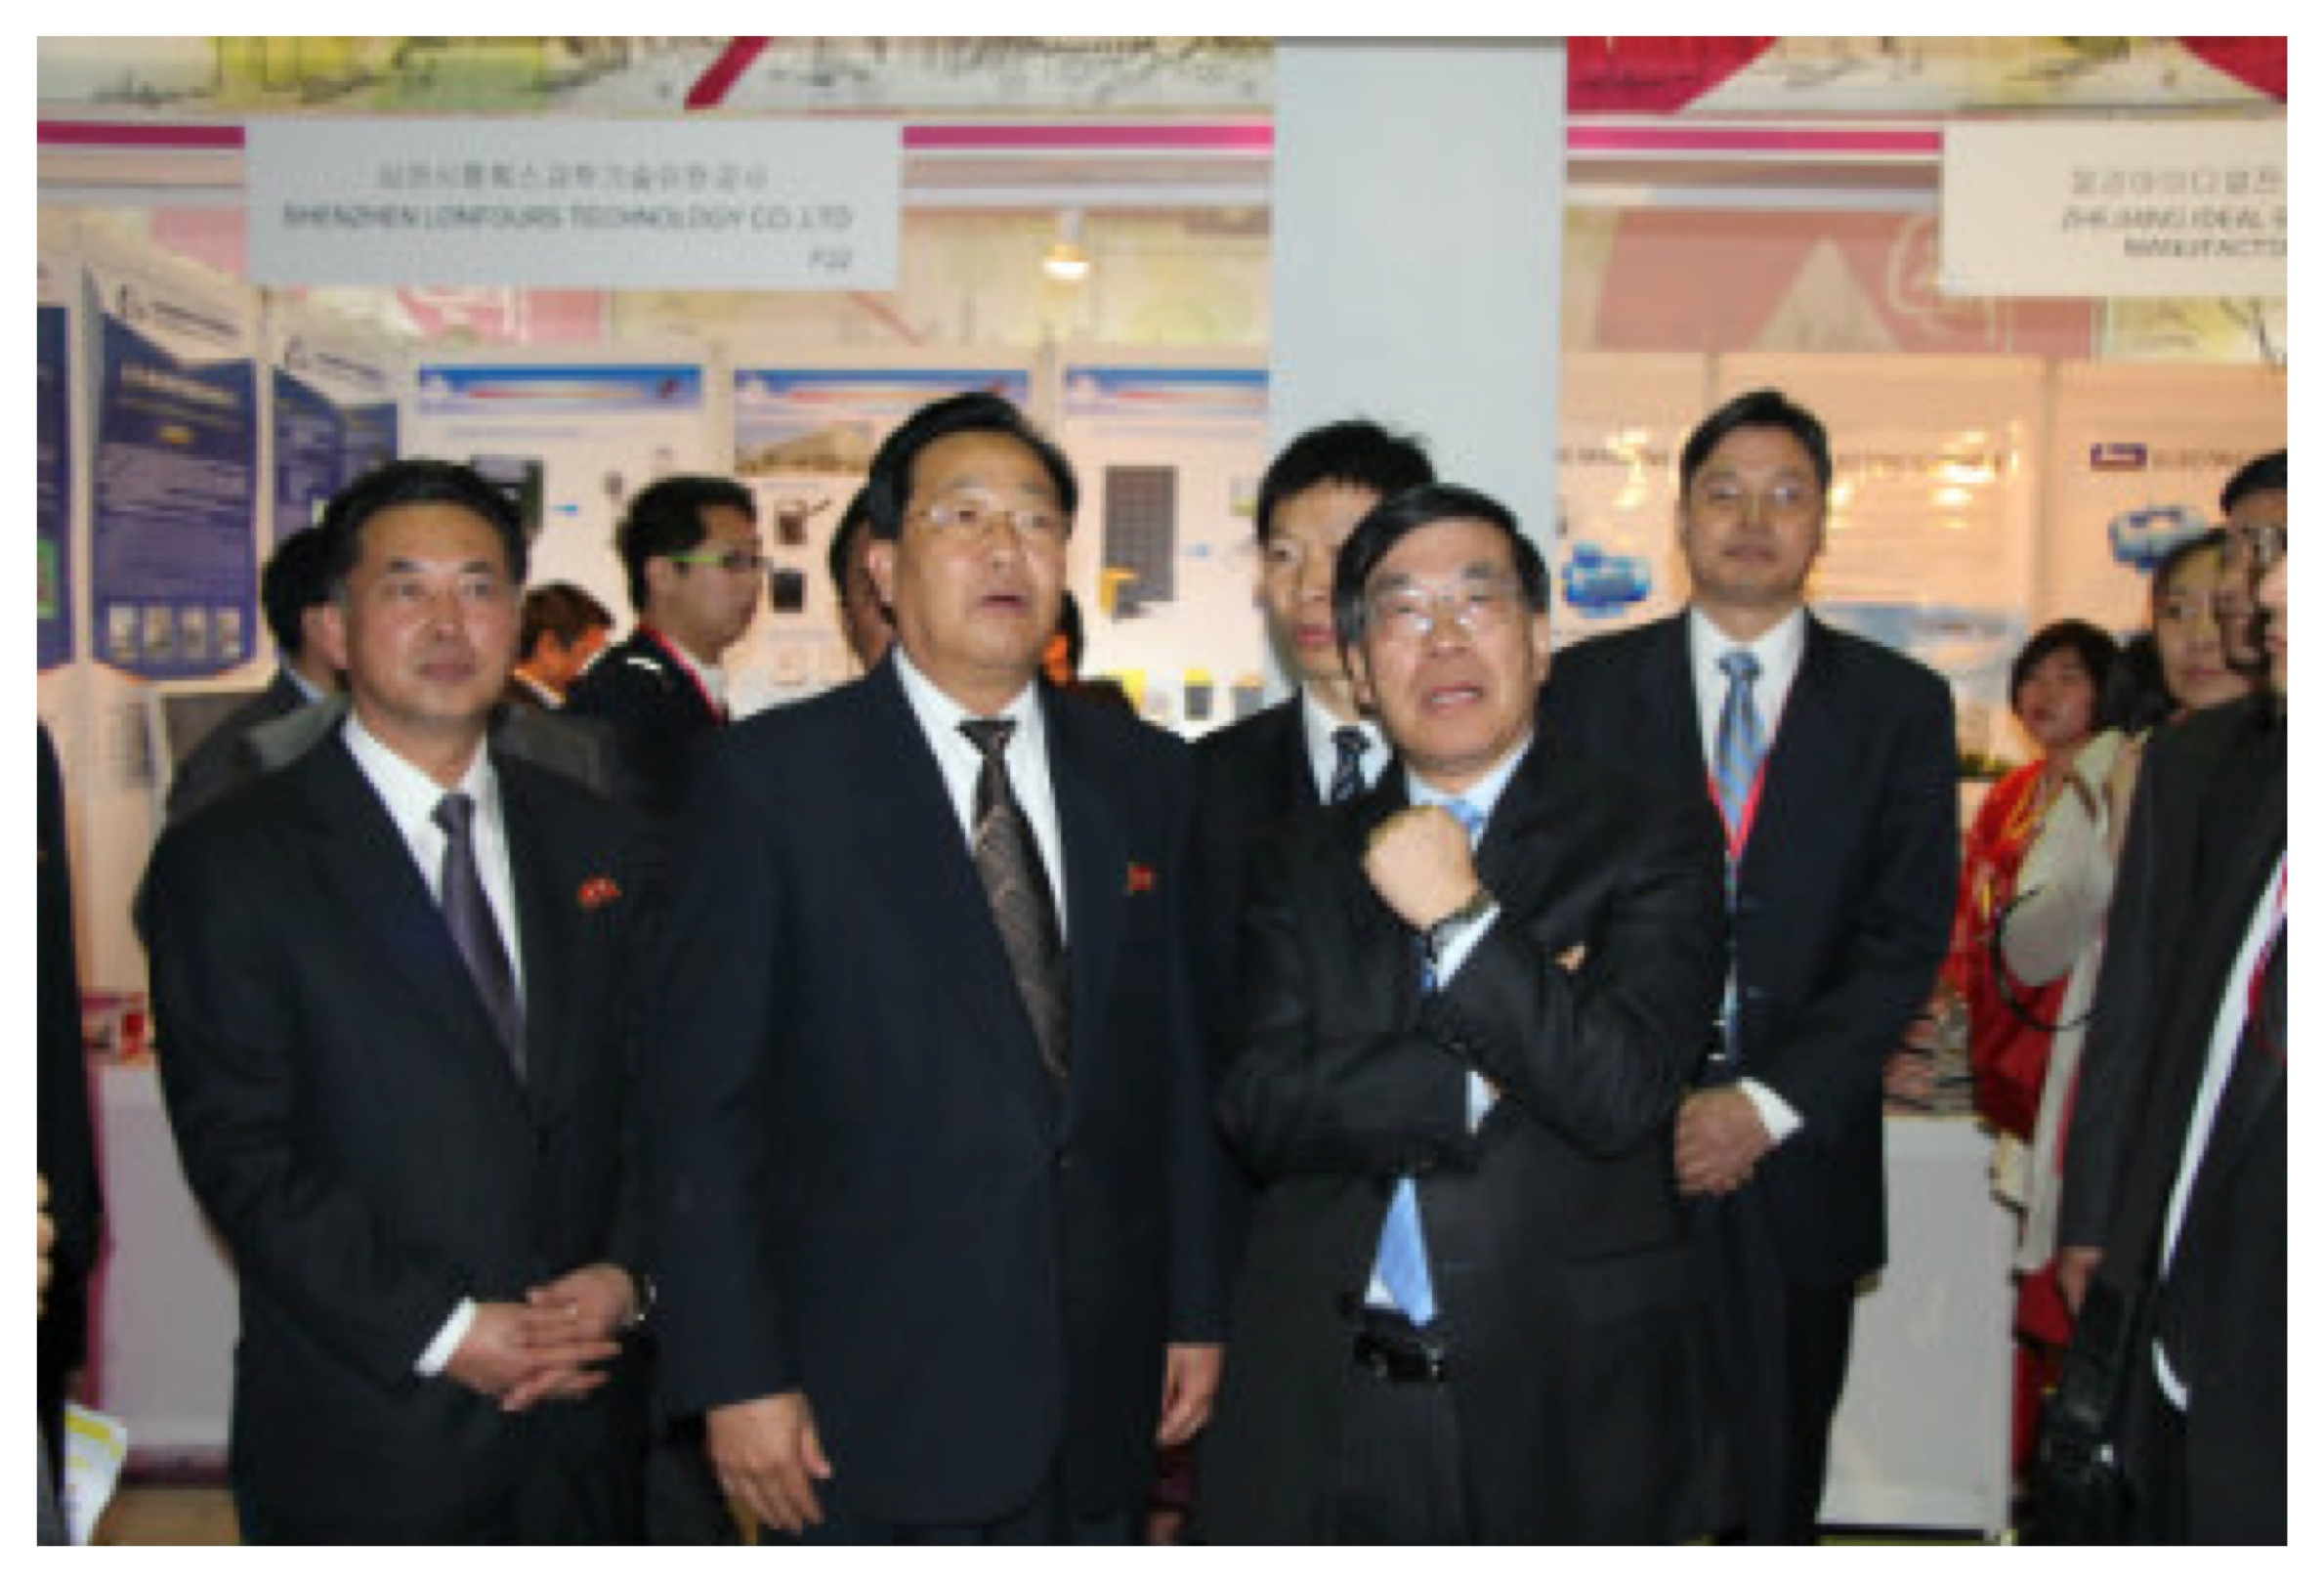 Chinese Ambassador to the DPRK Liu Hongcai (right) visits an exhibition at the Pyongyang Spring International Trade Fair on May 12, 2014.  Also in attendance is DPRK Vice Premier Kim Yong Jin (center) and DPRK Minister of Foreign Trade Ri Ryong Nam (left) (Photo: PRC Embassy in the DPRK).